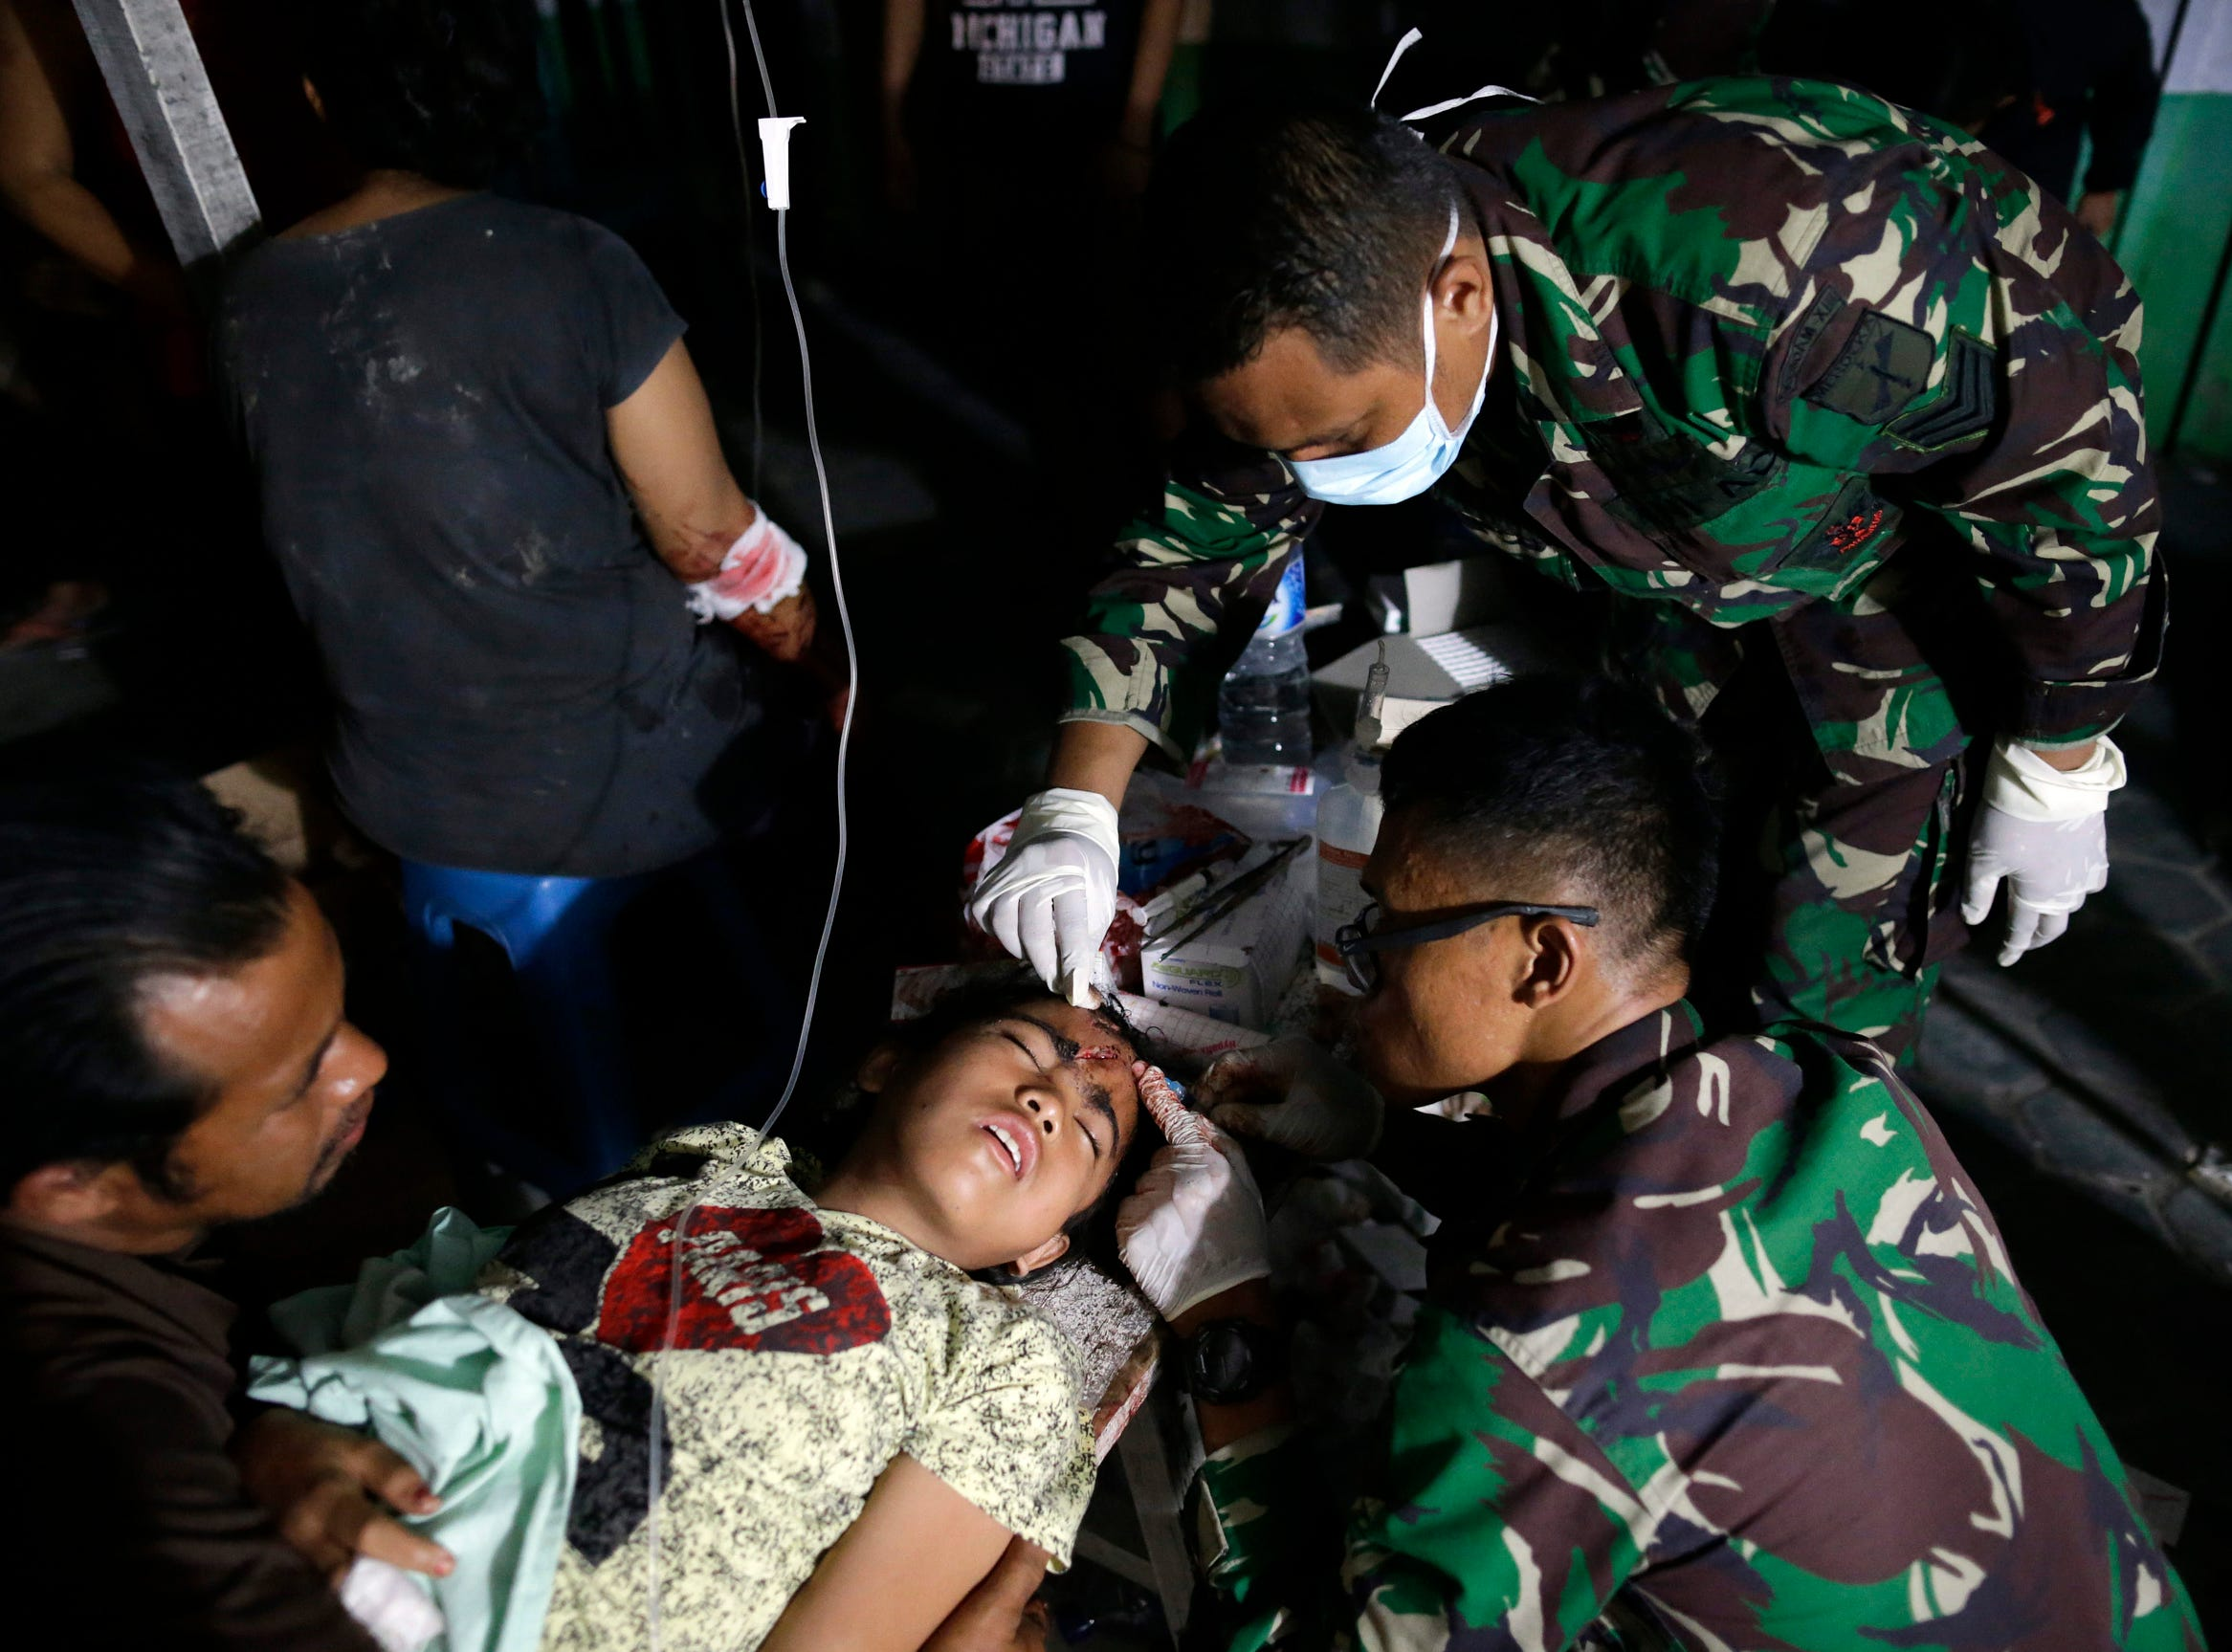 An Indonesian earthquake survivor gets medical treatment outside a military hospital in Palu, Central Sulawesi, Indonesia, on Sept. 29, 2018. According to reports, at least 384 people have died as a result of a series of powerful earthquakes that hit central Sulawesi and triggered a tsunami.